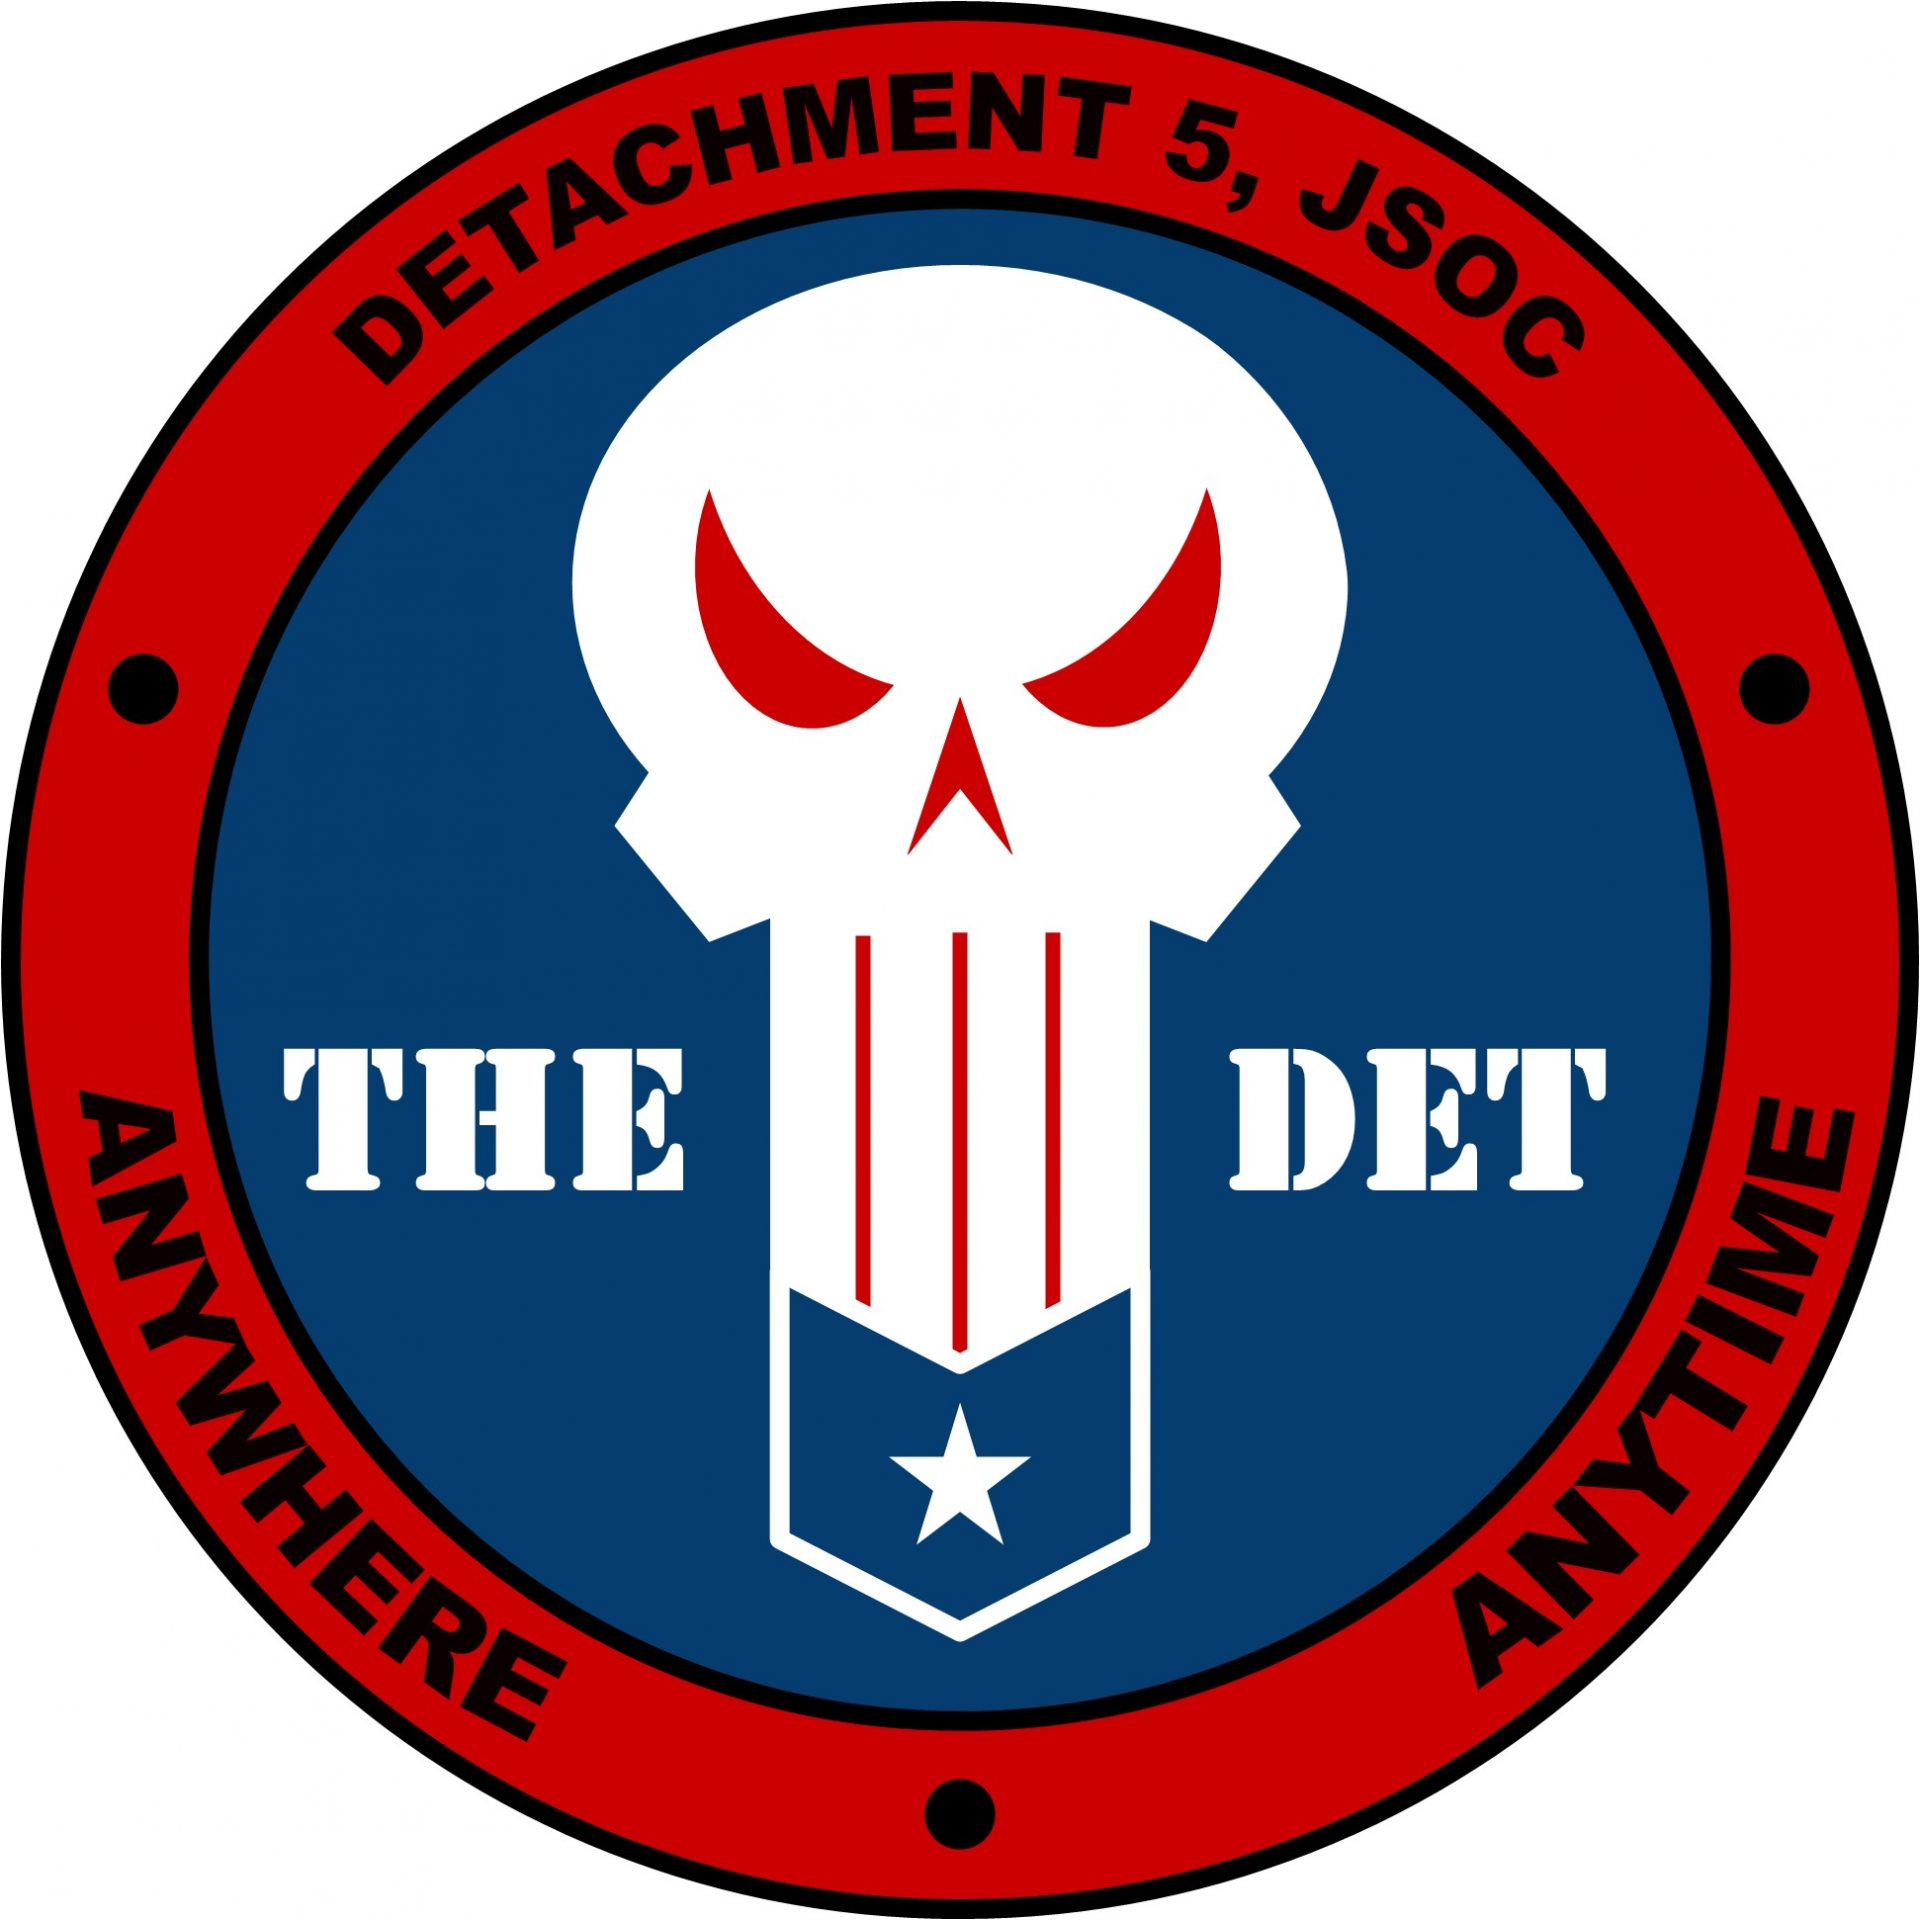 Logo for the DET, a squadron patch of a white skull on blue background with inscription JSOC, Detachment 5, Anywhere, Anytime